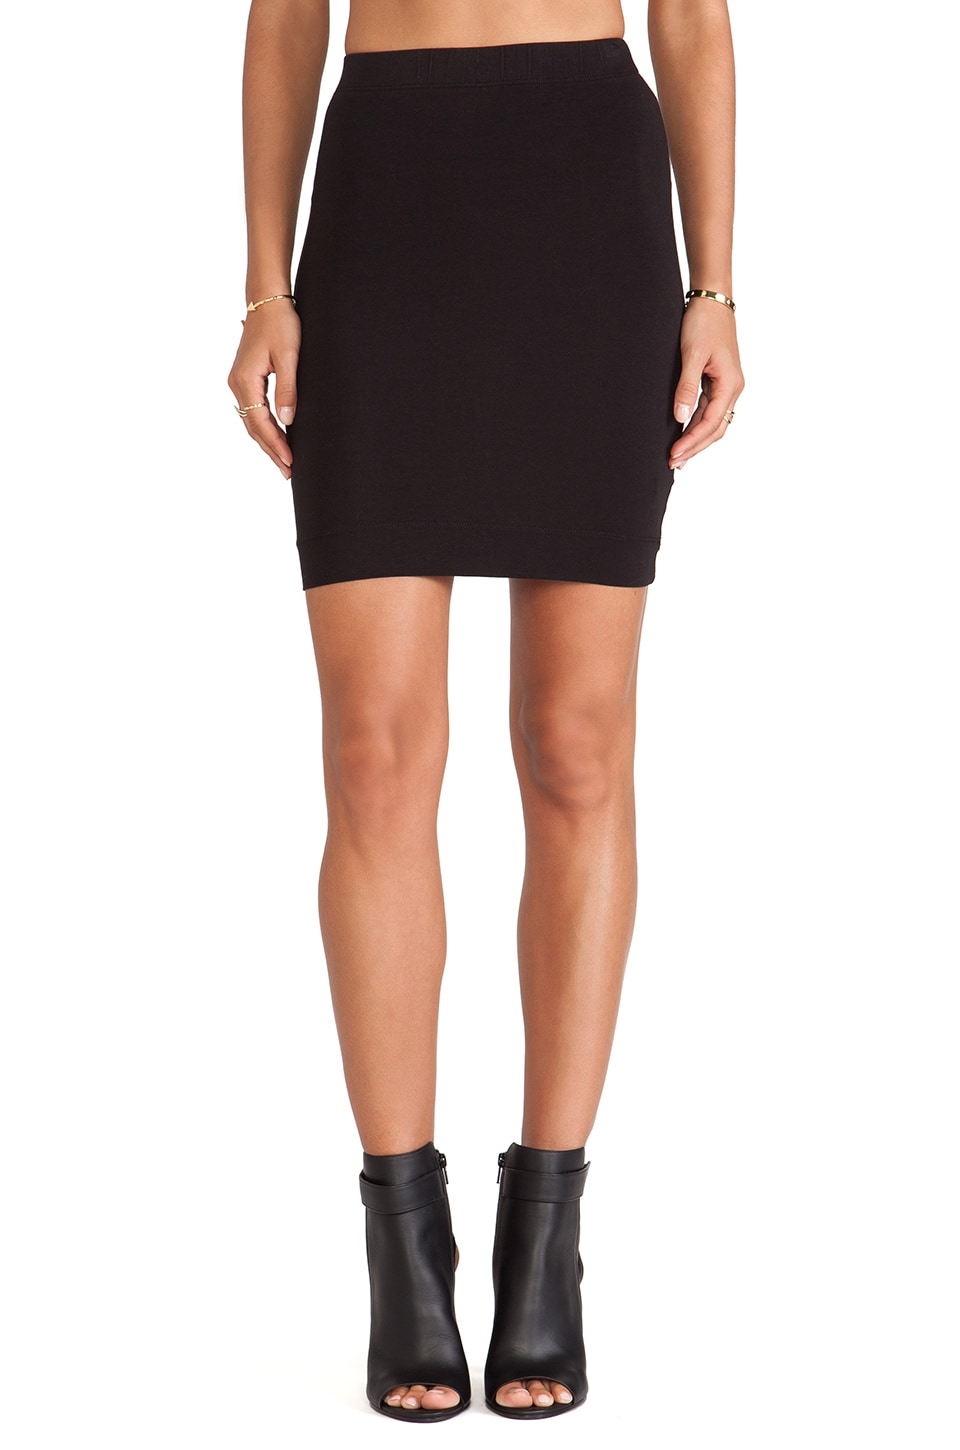 LA Made Candice Skirt in Black